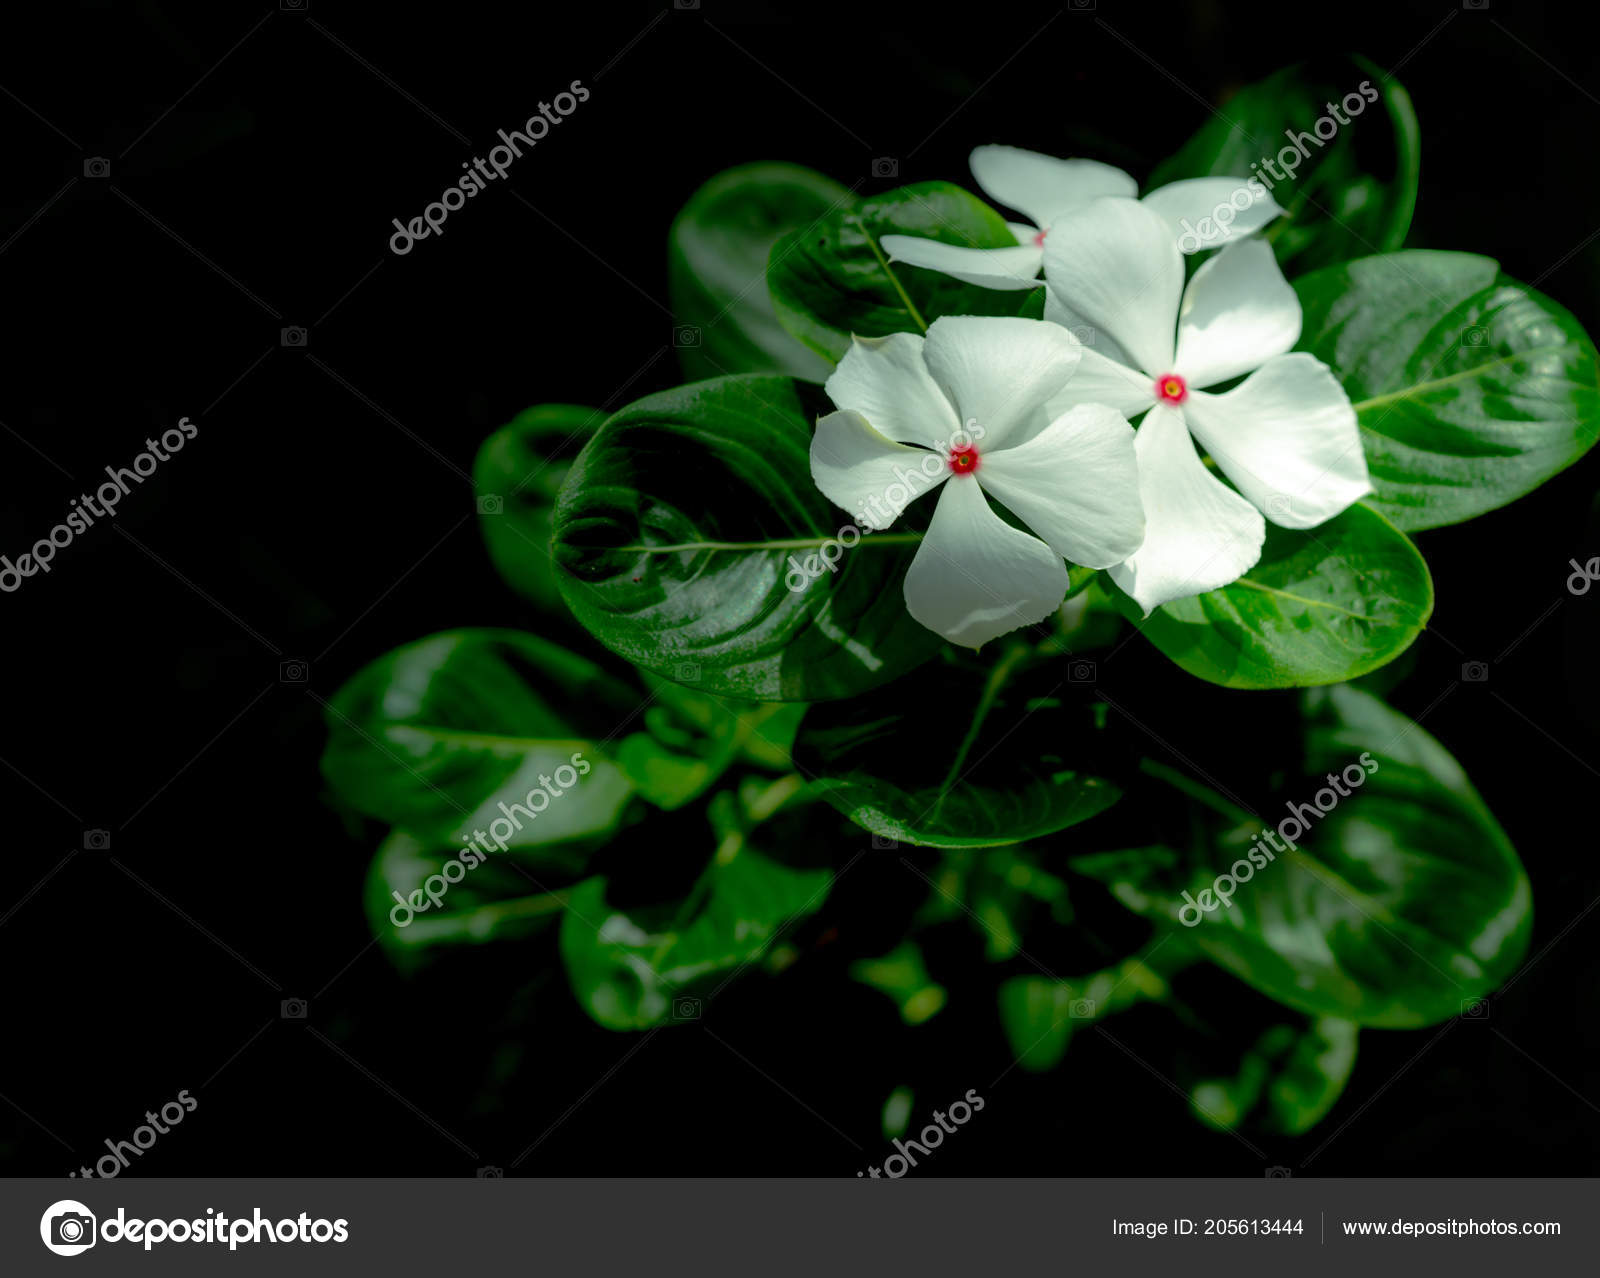 Catharanthus Roseus West Indian Periwinkle Madagascar Periwinkle